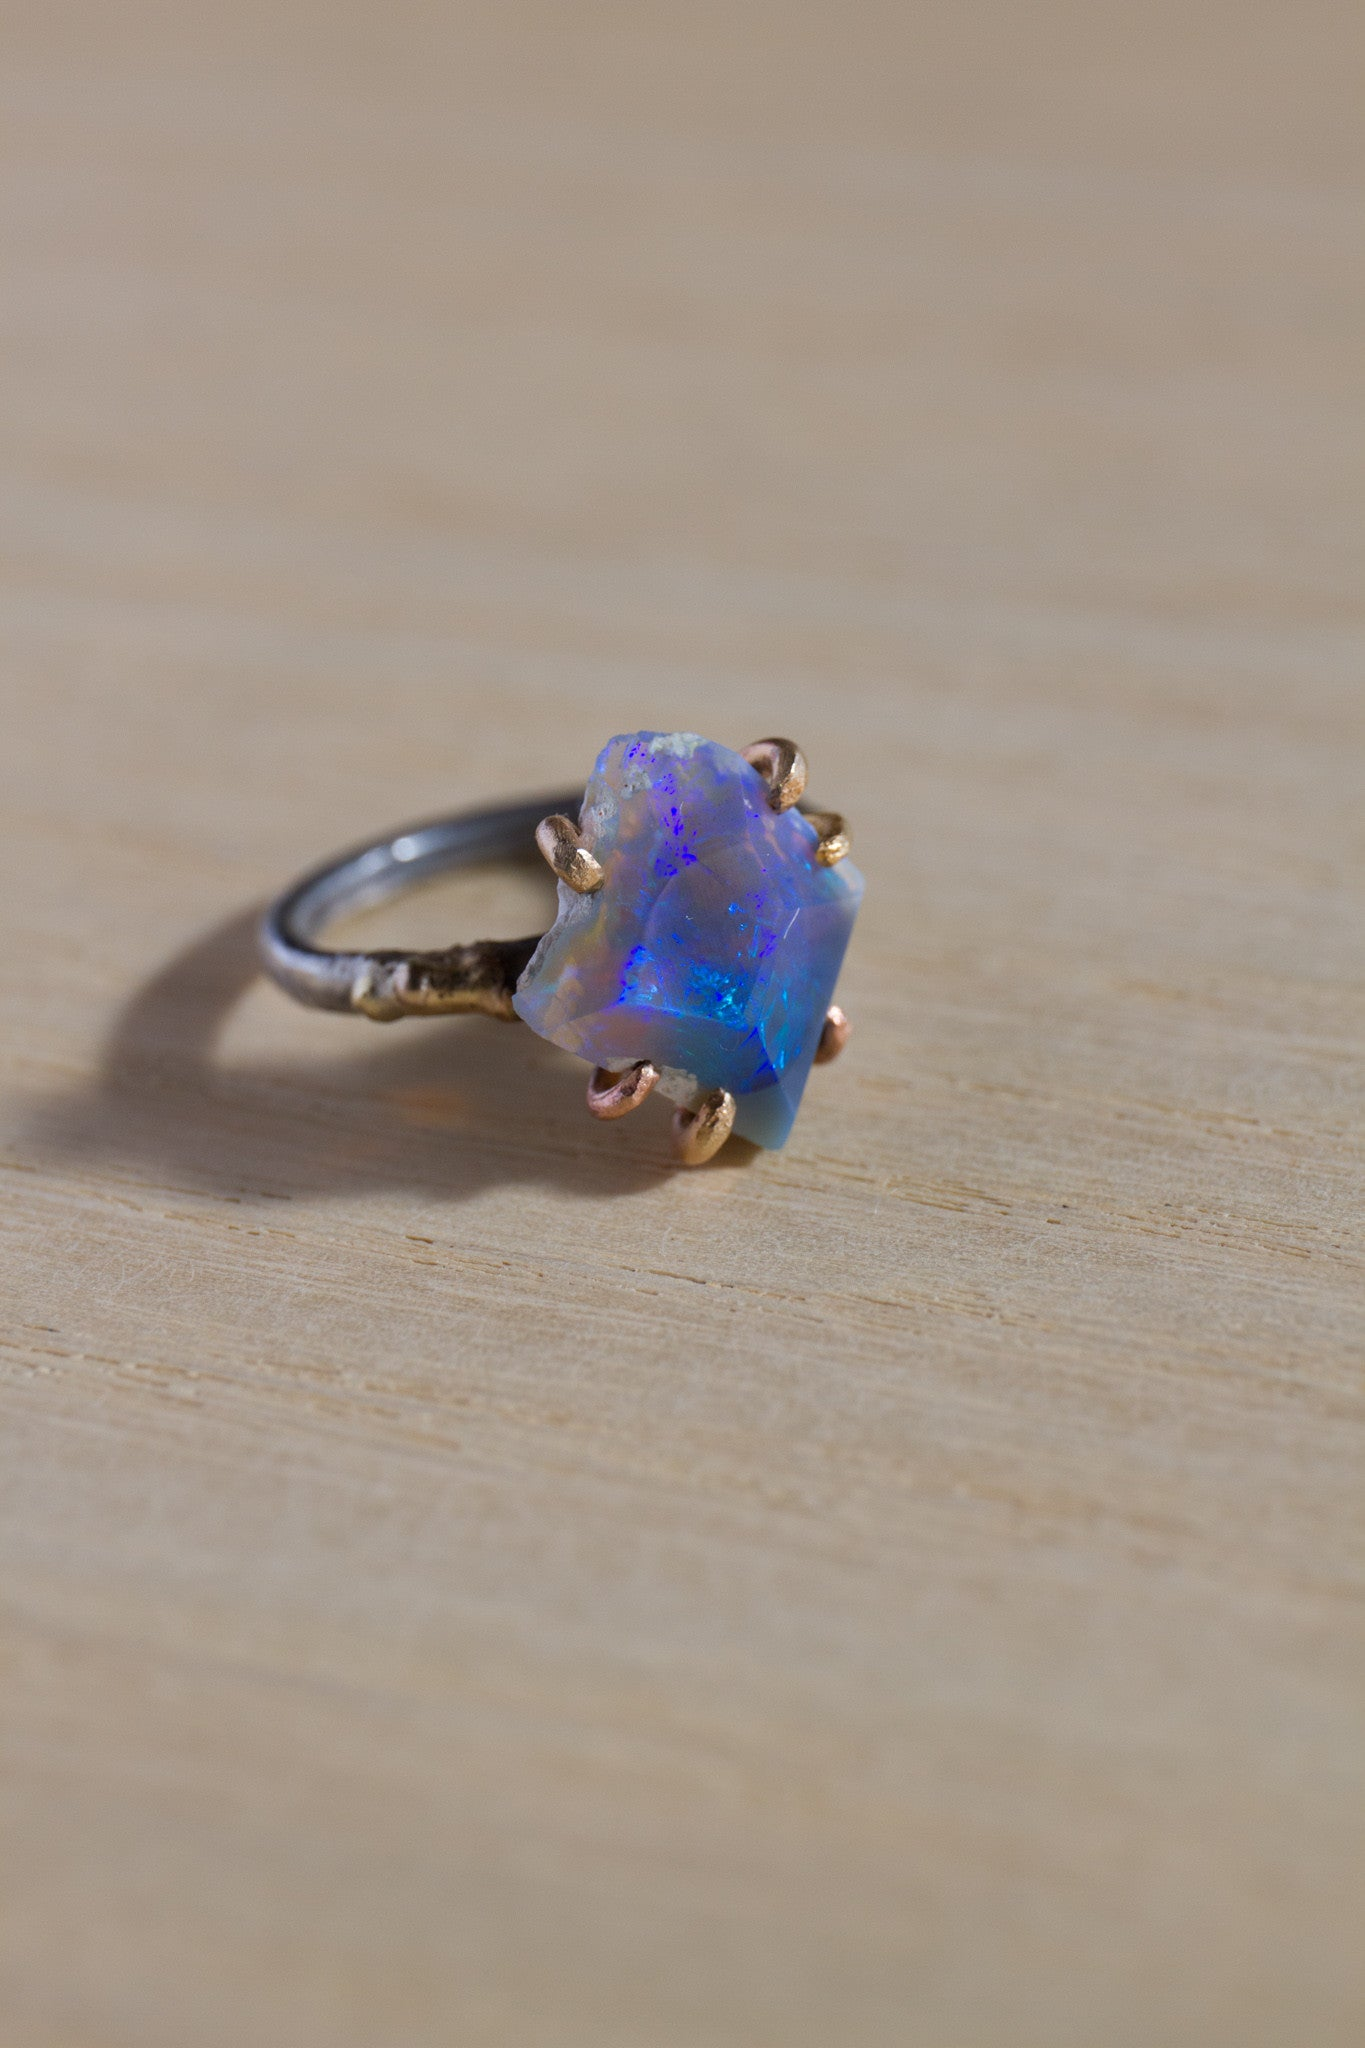 Variance Objects large australian opal ring